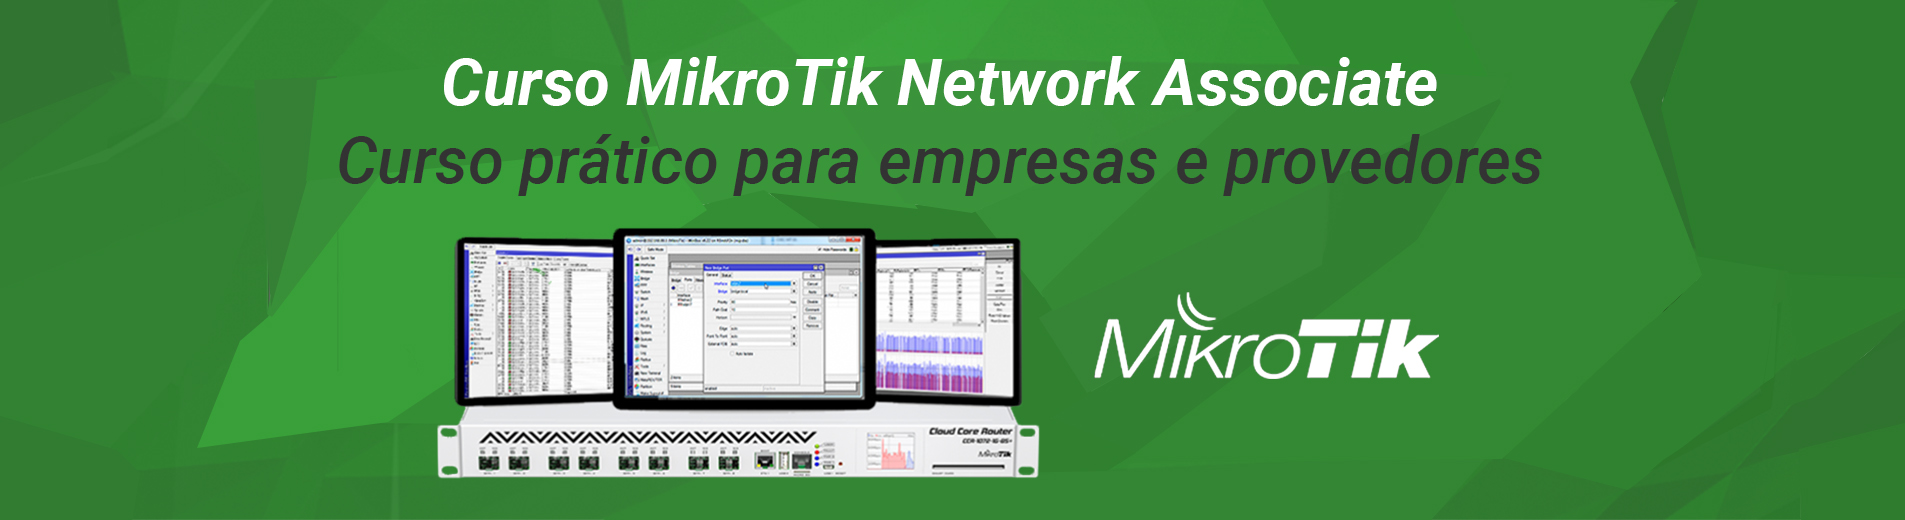 banner-site-mikrotik-network-associate